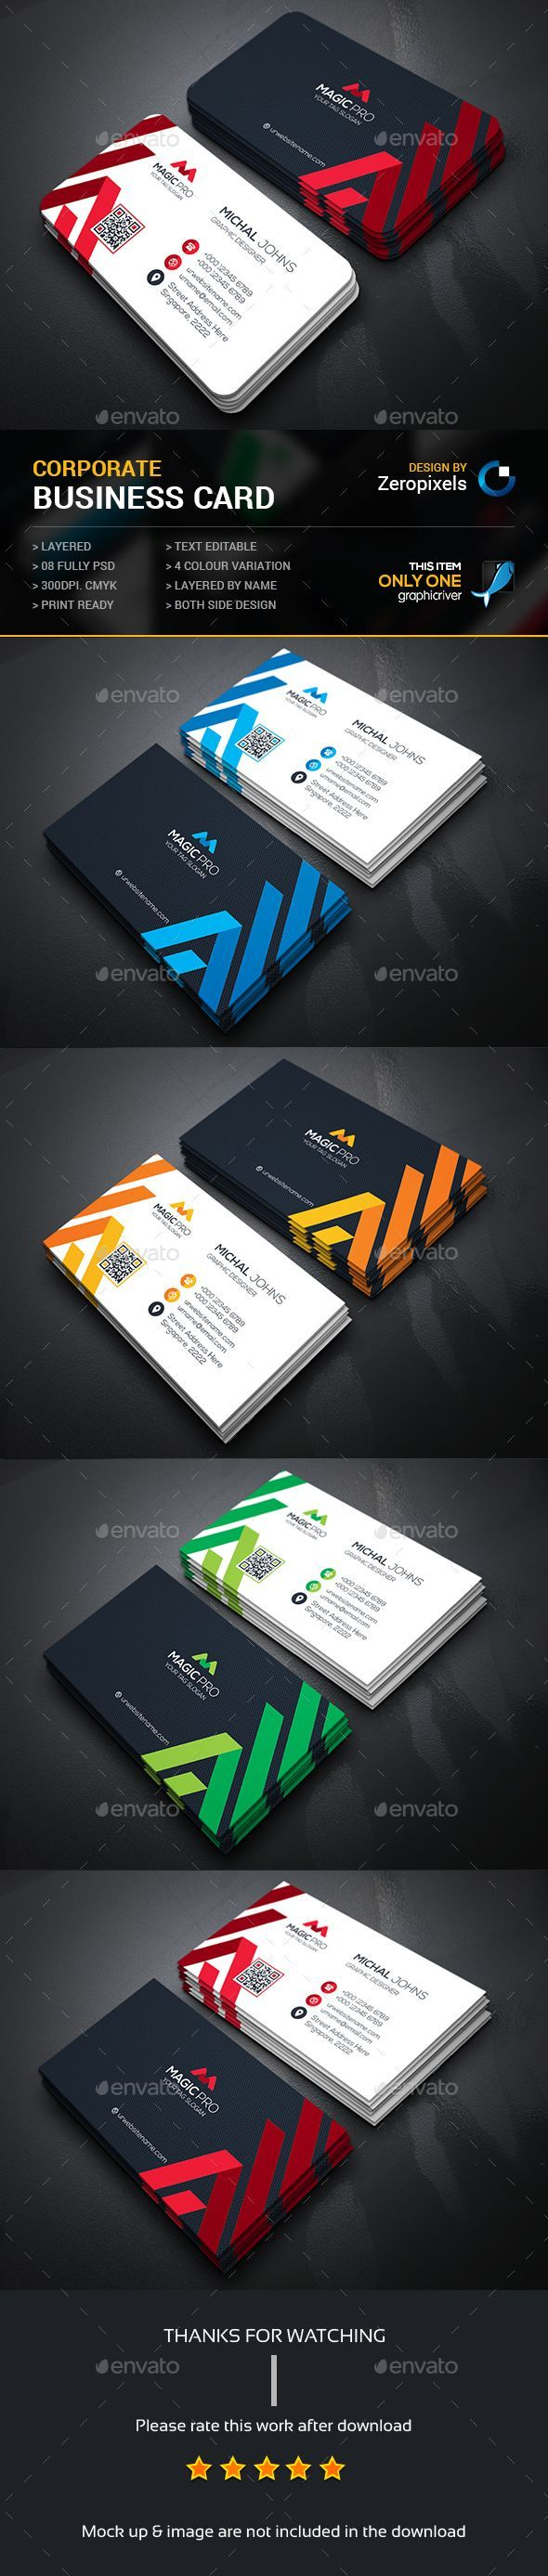 Modern Business Card Template PSD. Download here: graphicriver.net ...